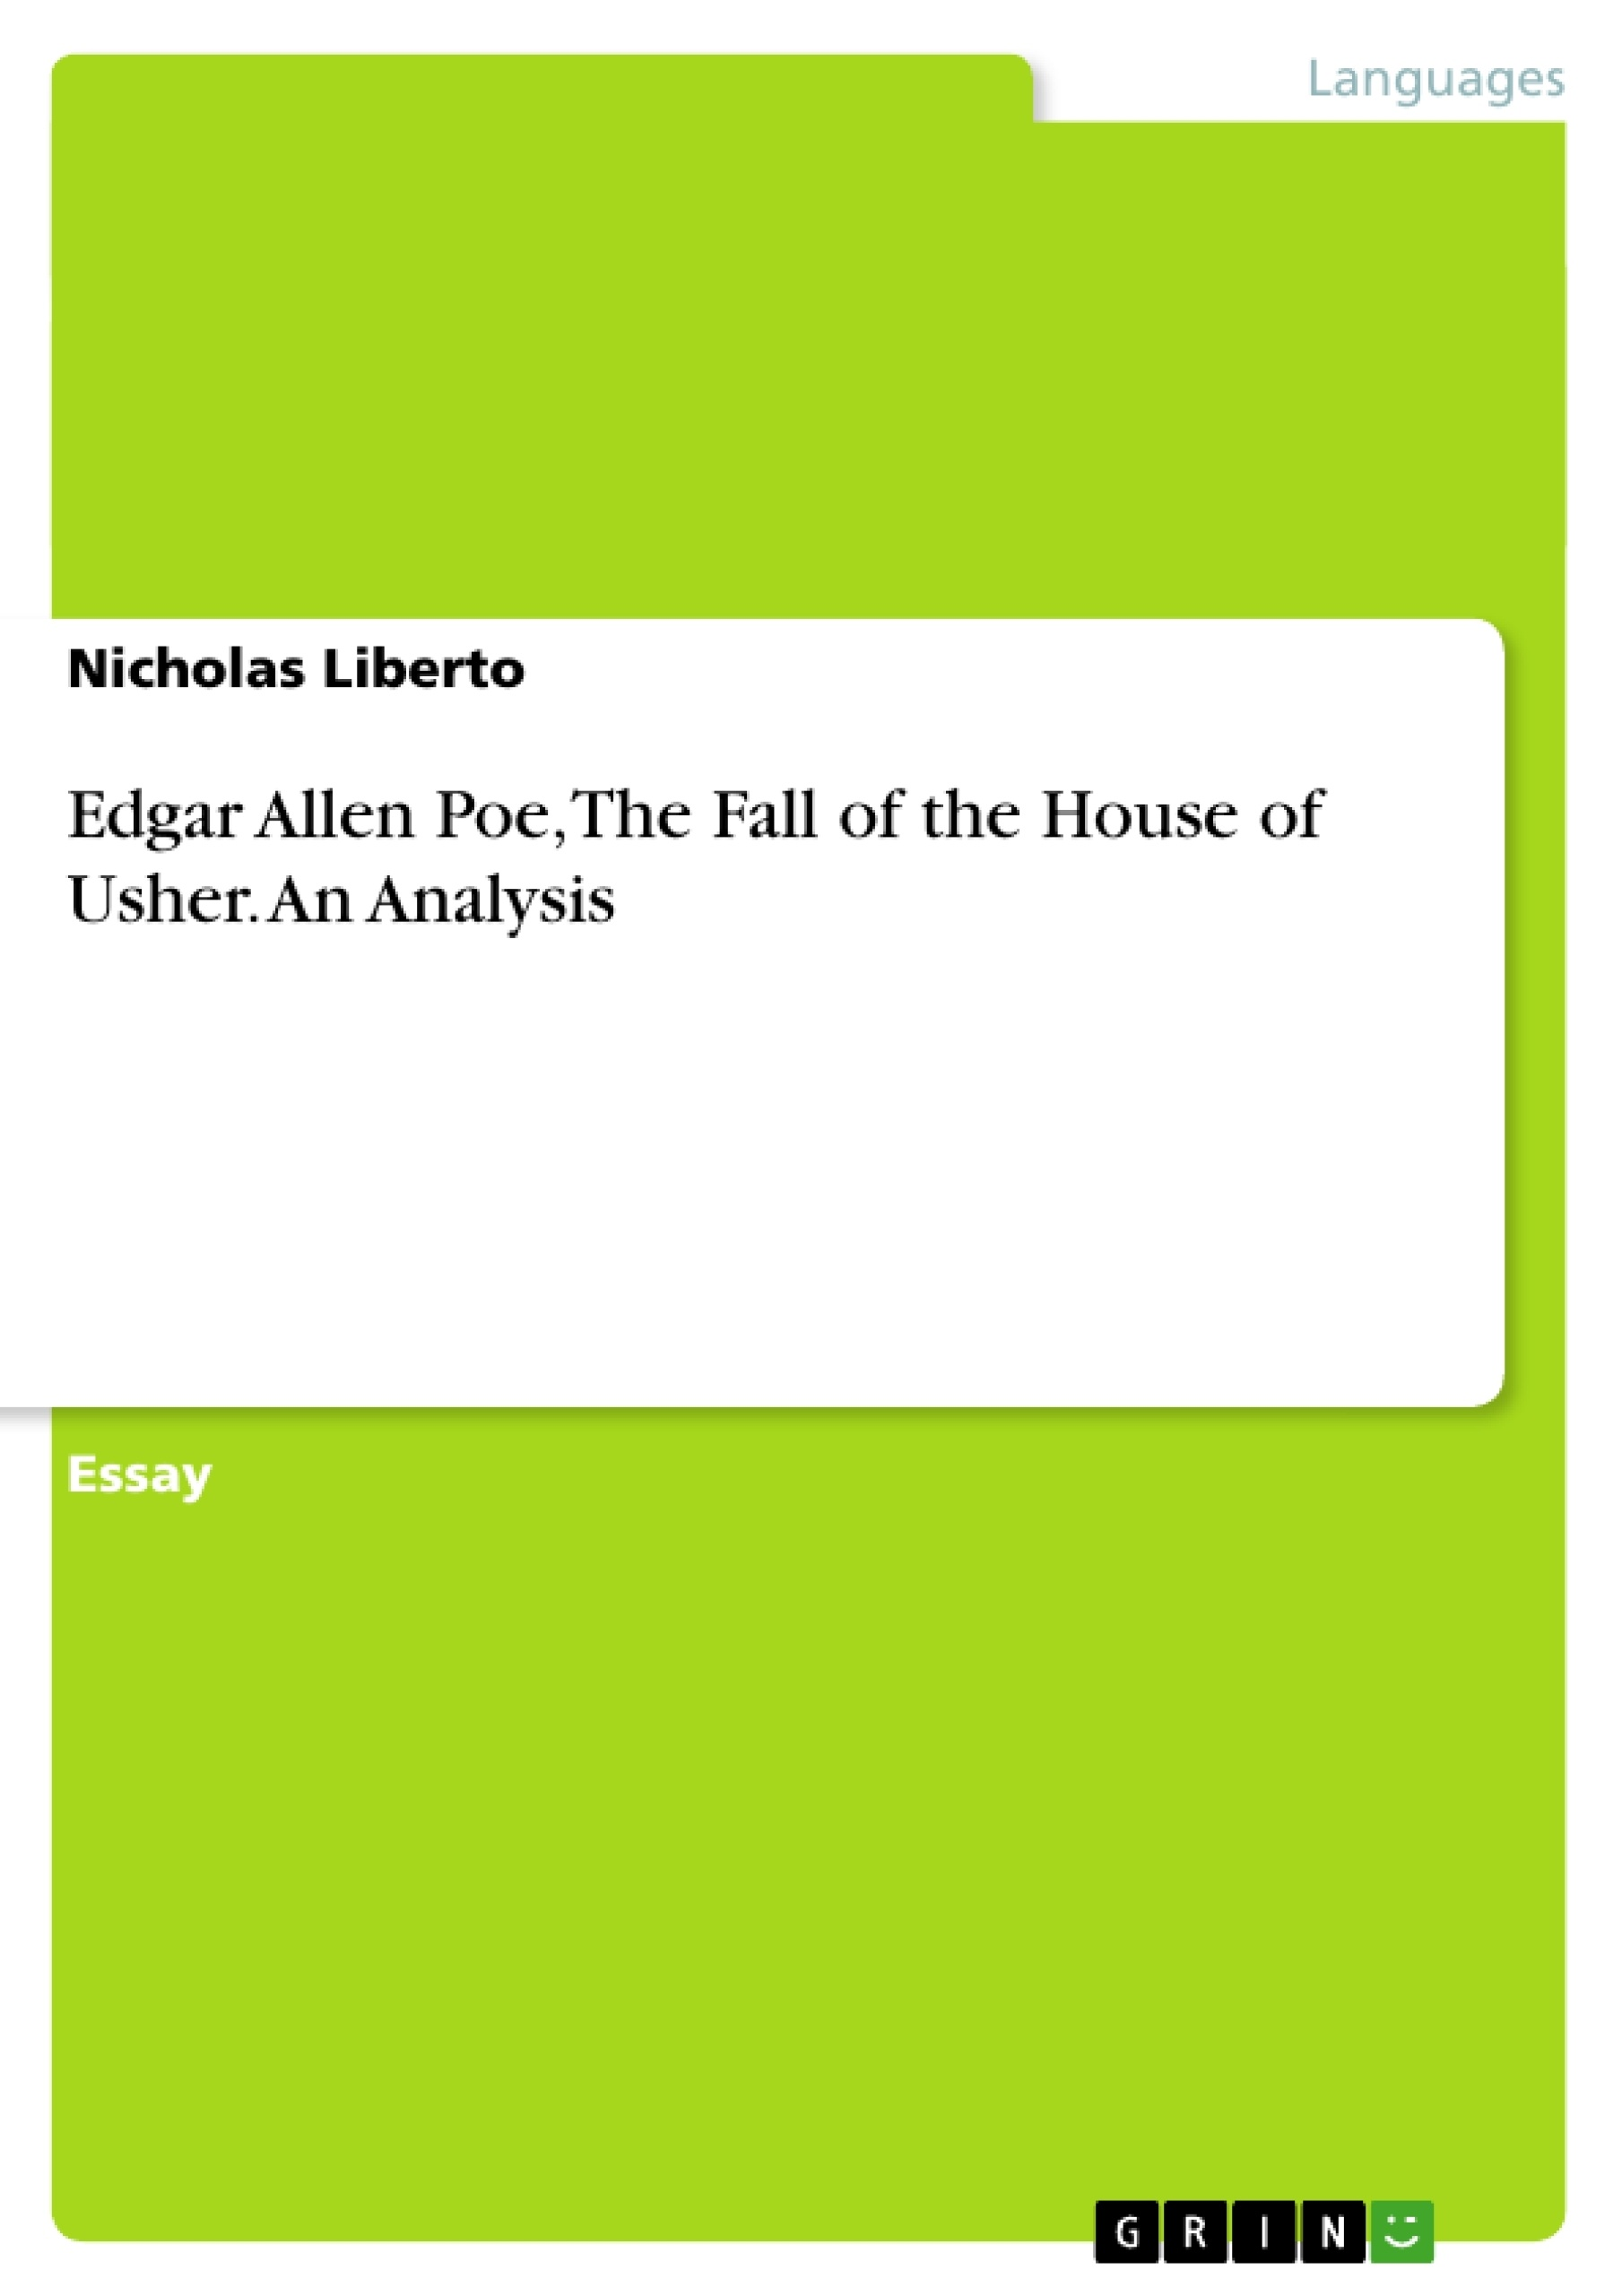 Title: Edgar Allen Poe, The Fall of the House of Usher. An Analysis